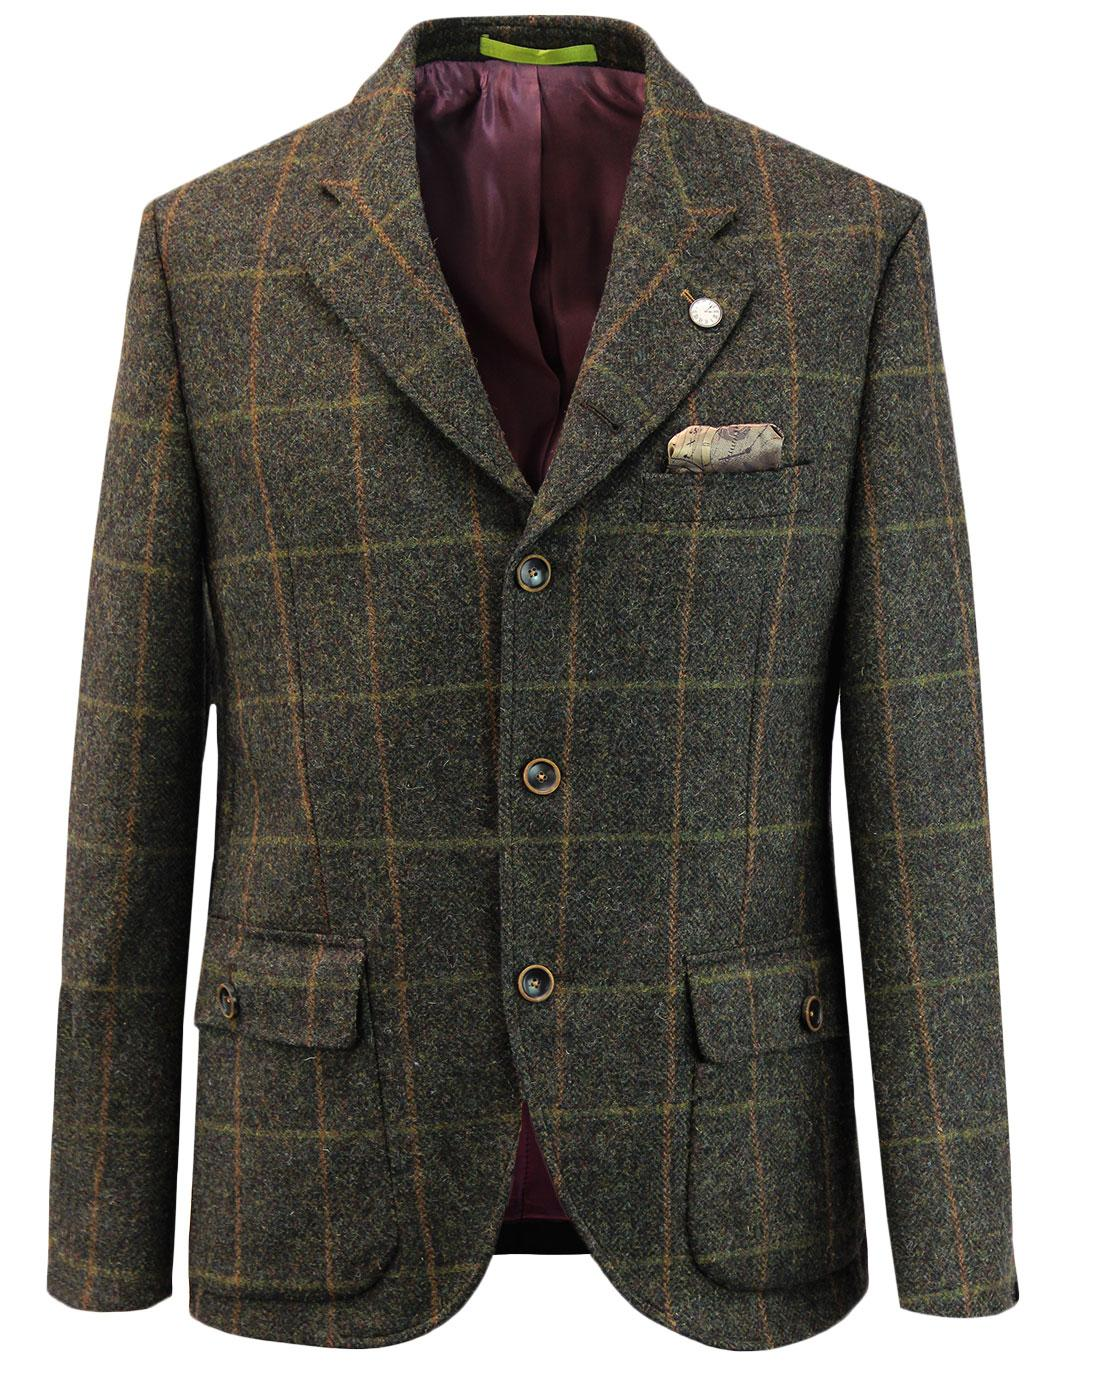 Grouse GIBSON LONDON 1960s Mod Tweed Check Blazer